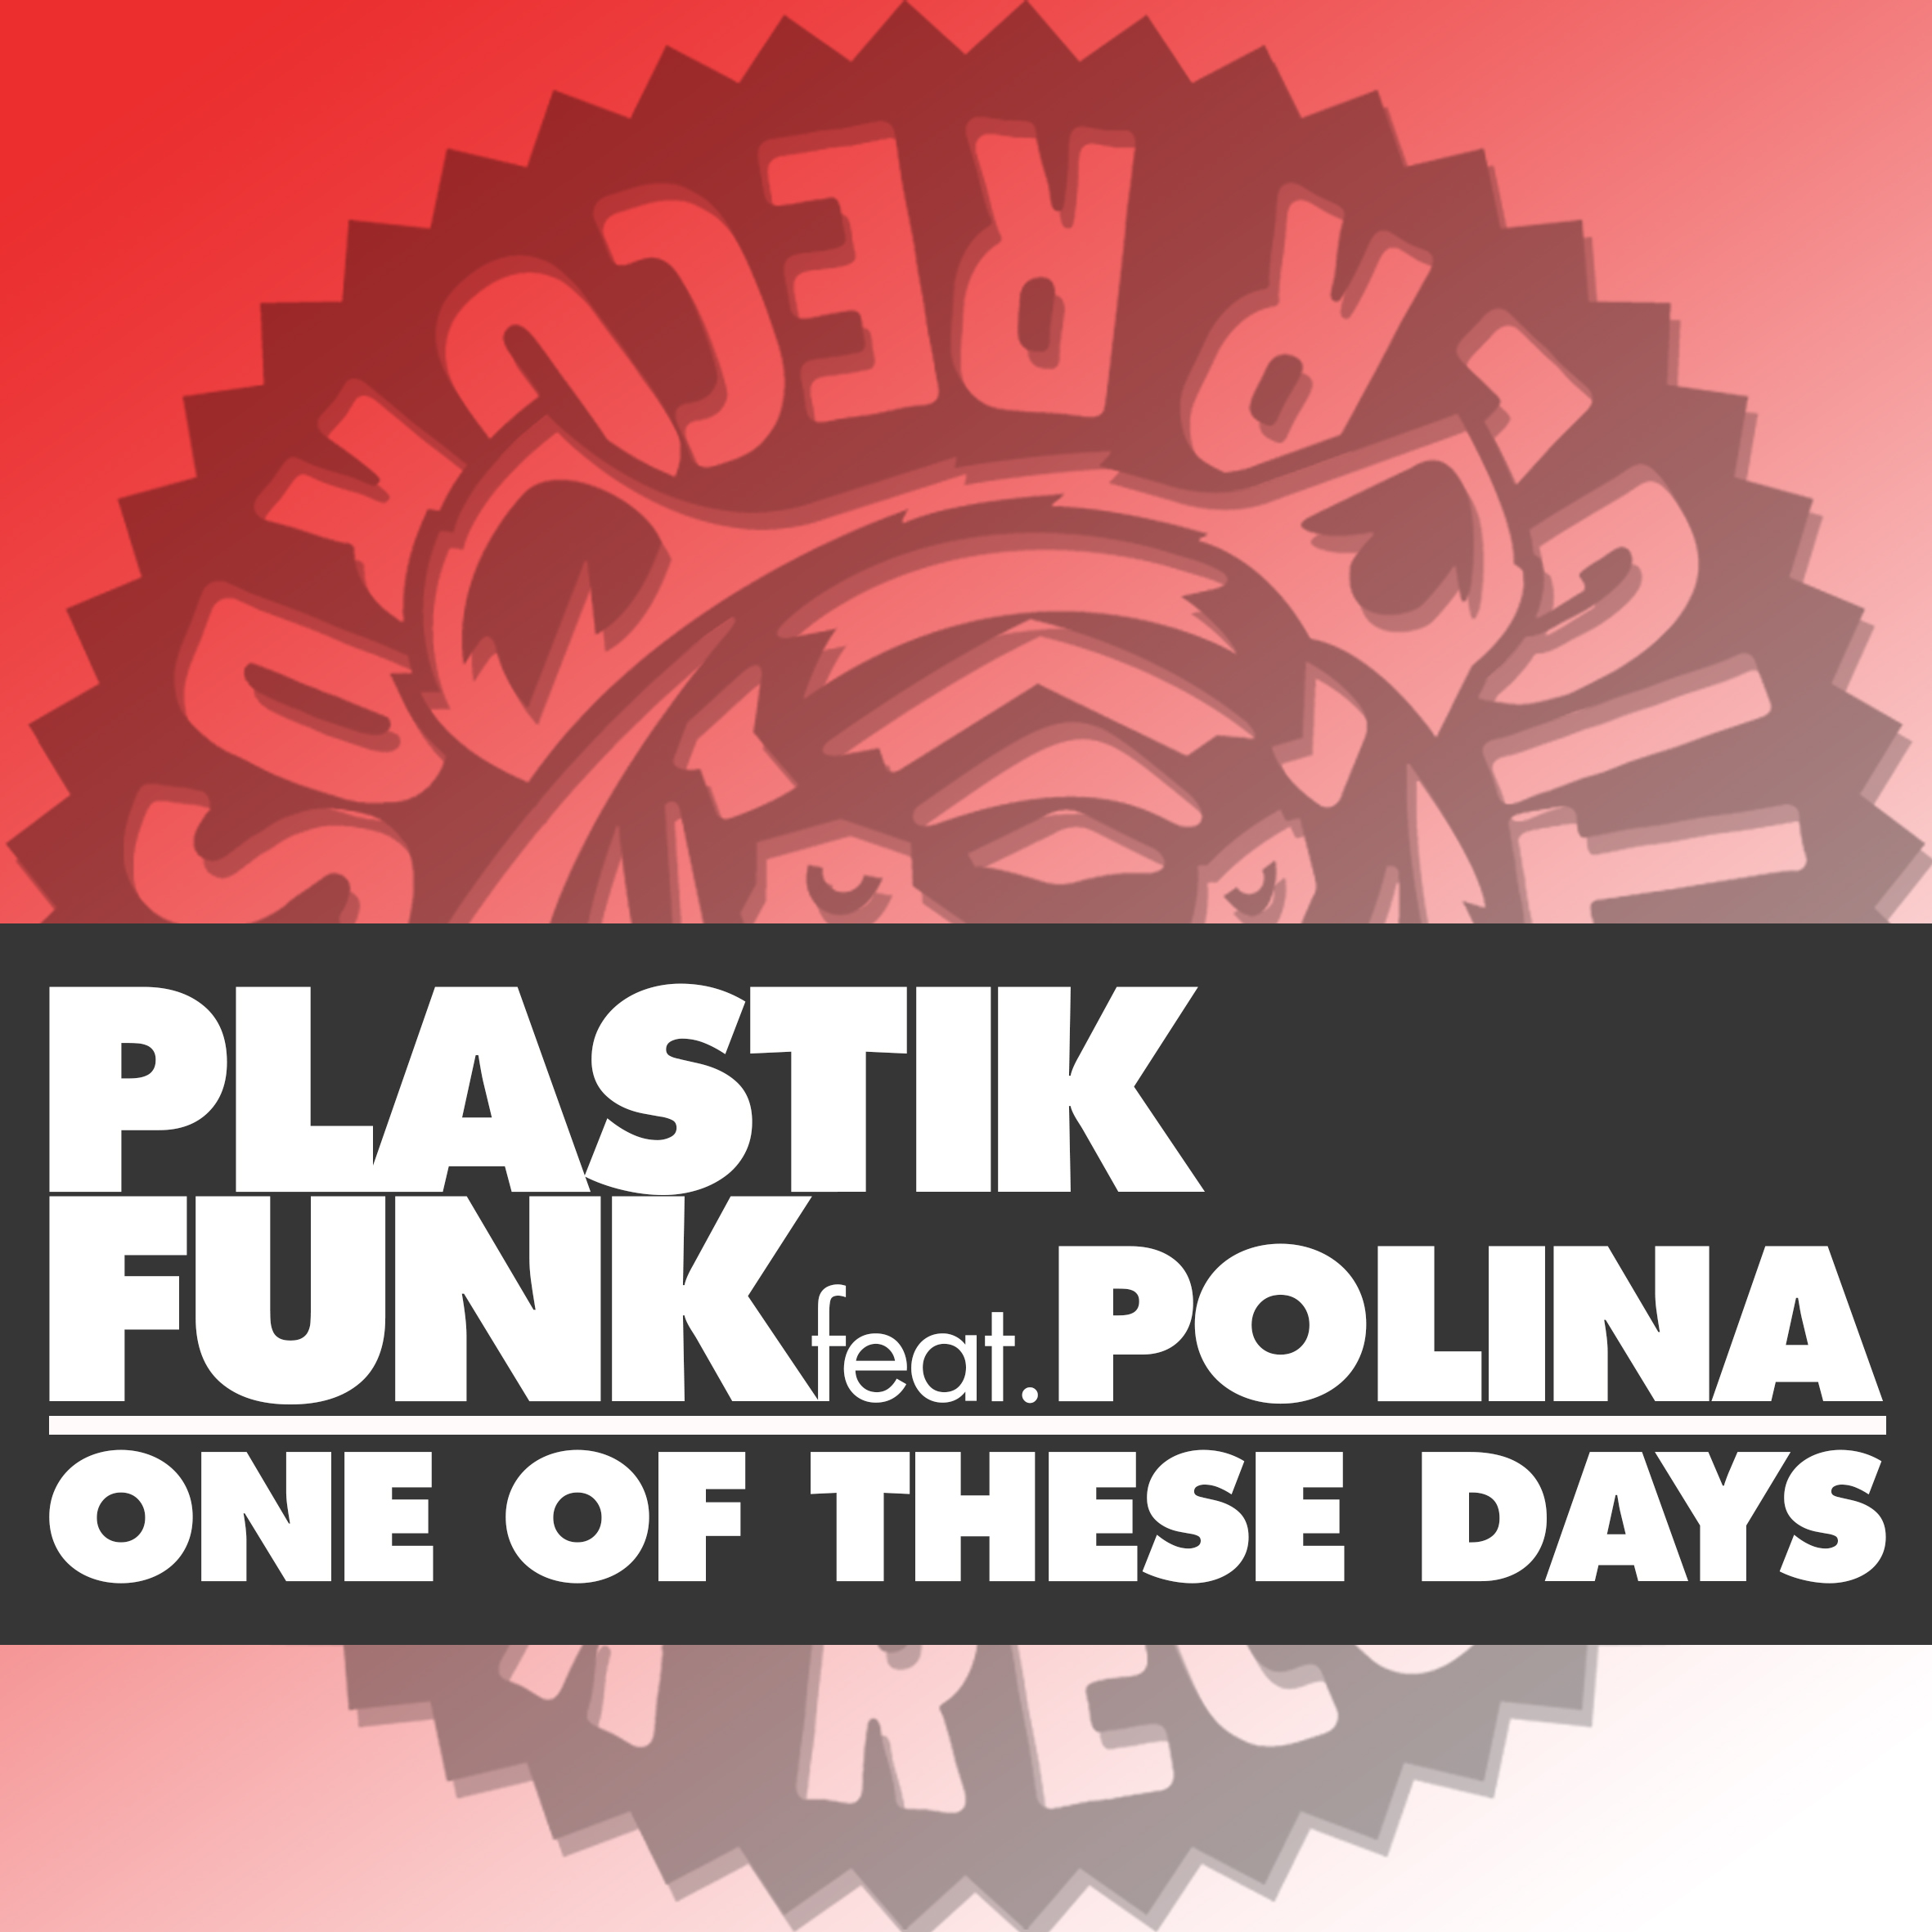 Plastik Funk, Polina – One Of These Days (Original Mix)